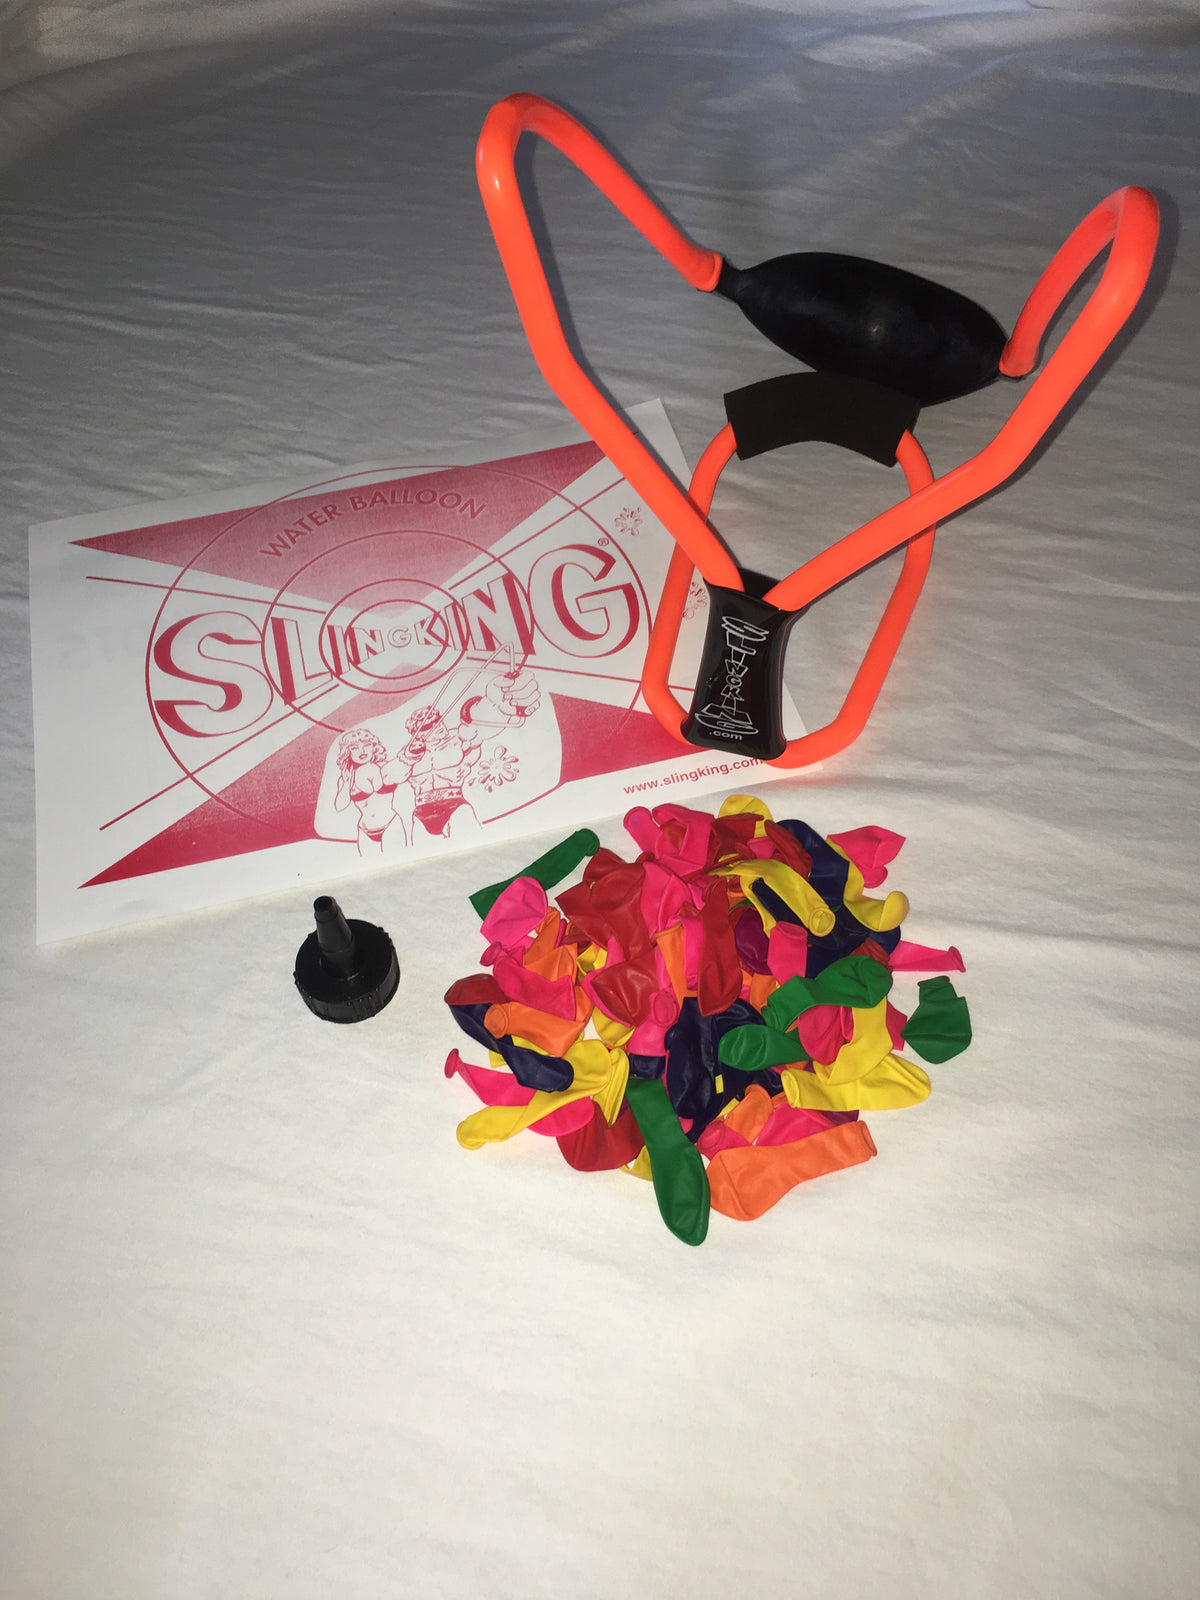 SlingKing Original Patented 1 person slingshot